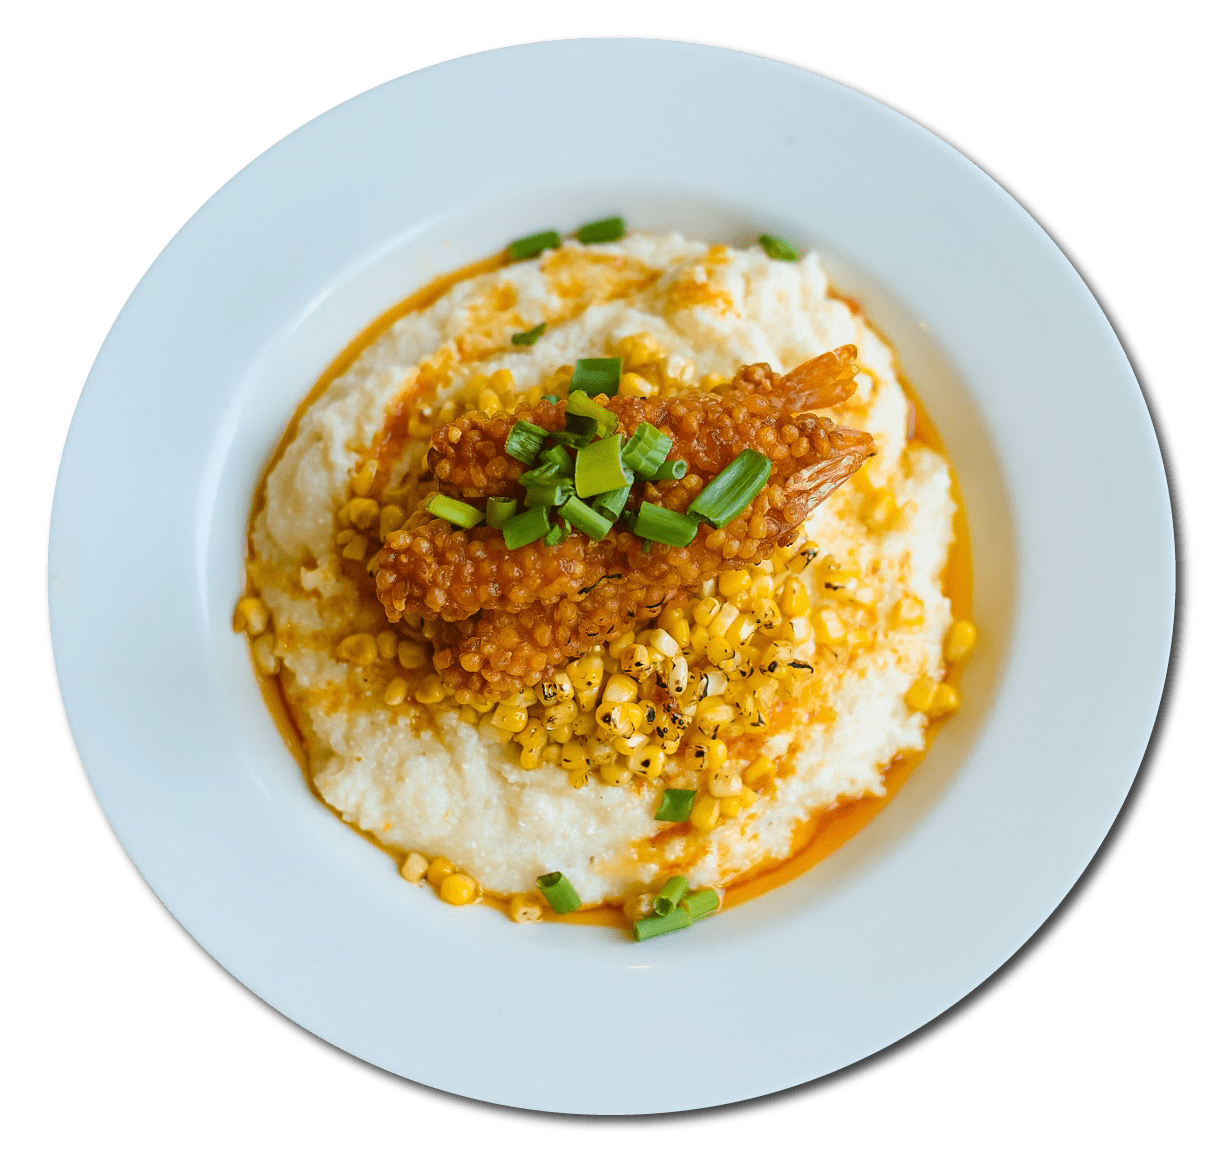 Fried Shrimp and Grits Image